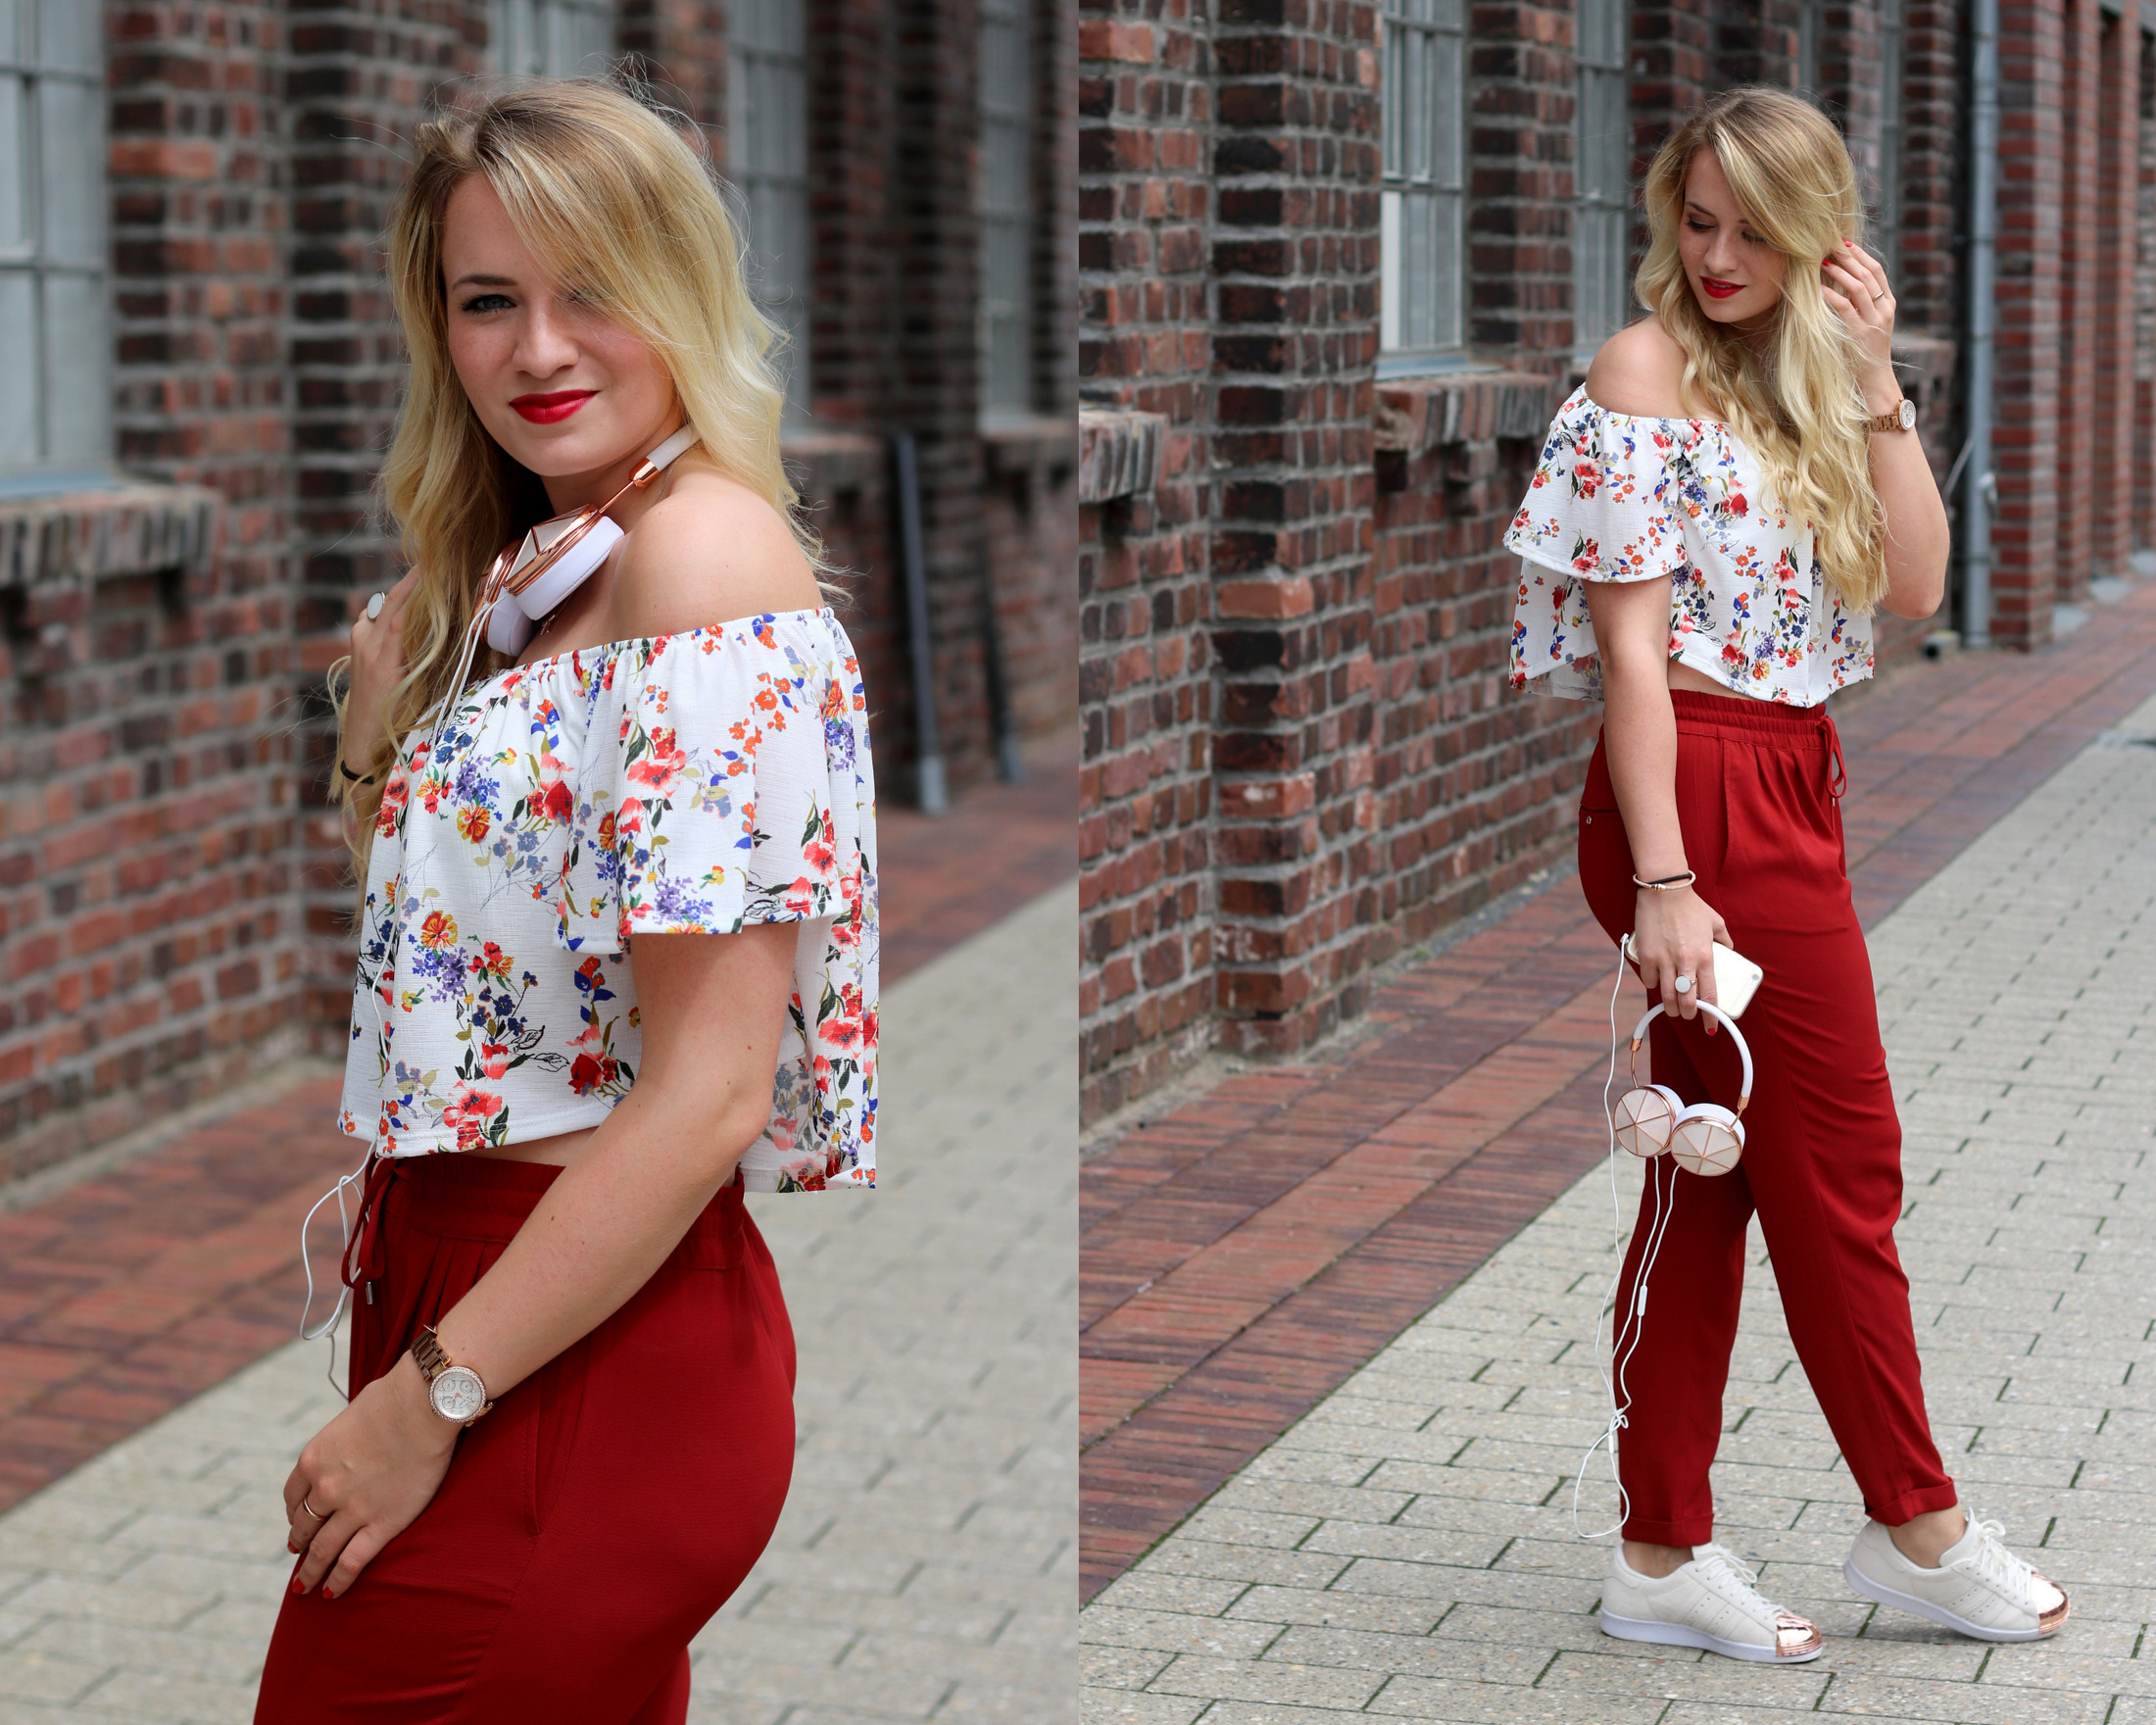 frends-headphones-kopfhörer-audio-musik-music-outfit-summer-early-look-zara-mrsbrightside (9)